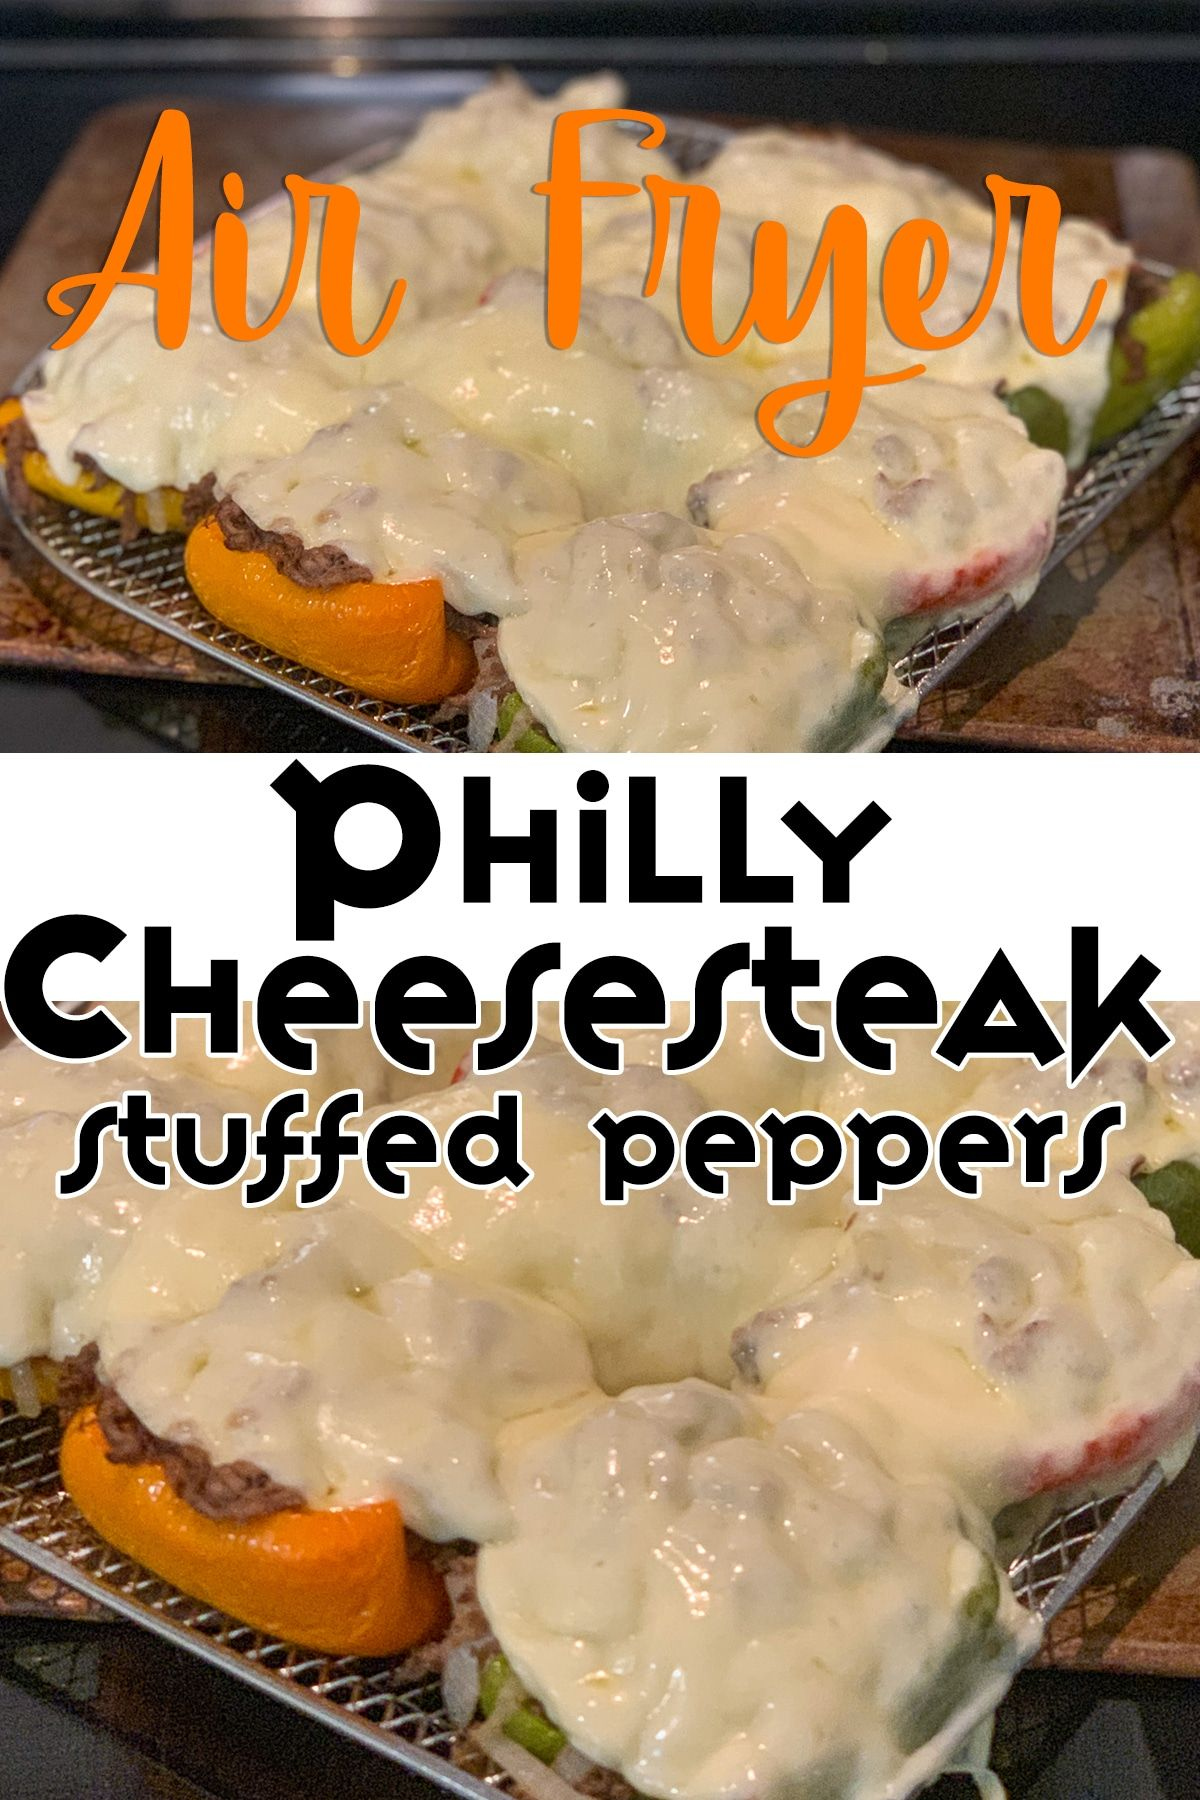 Air Fryer Philly Cheesecake Stuffed Peppers Recipe in